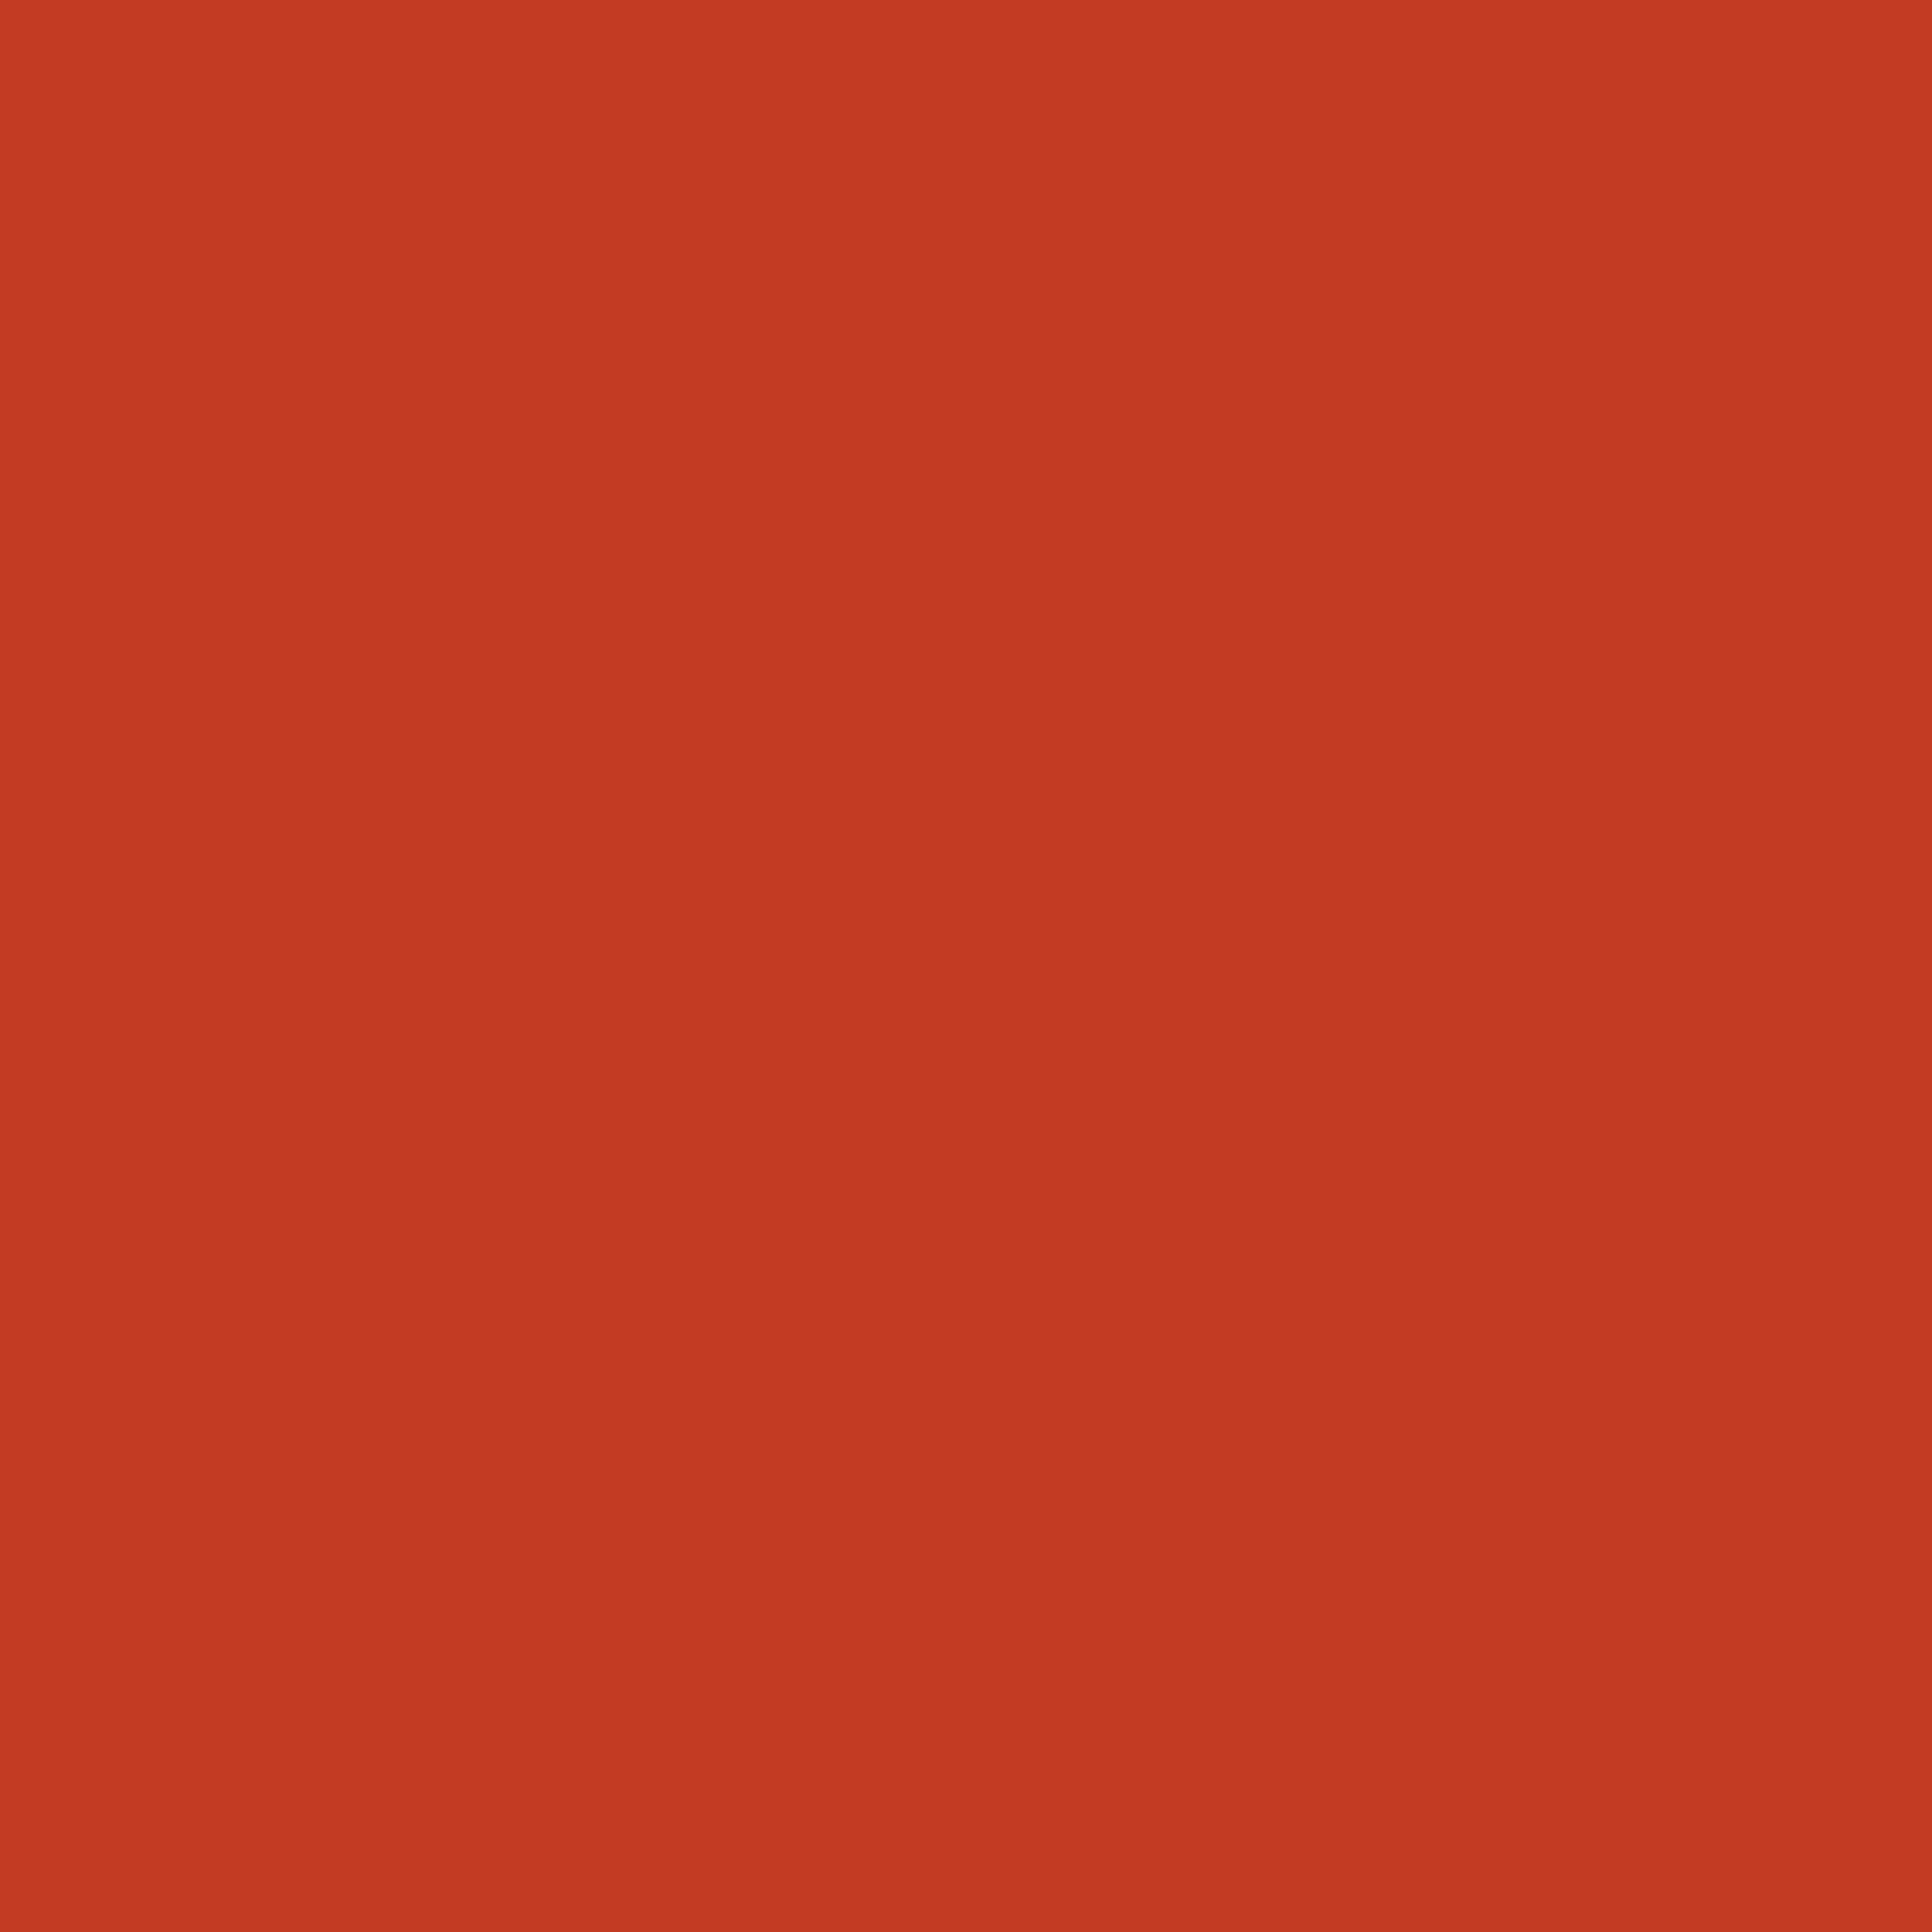 3600x3600 Dark Pastel Red Solid Color Background